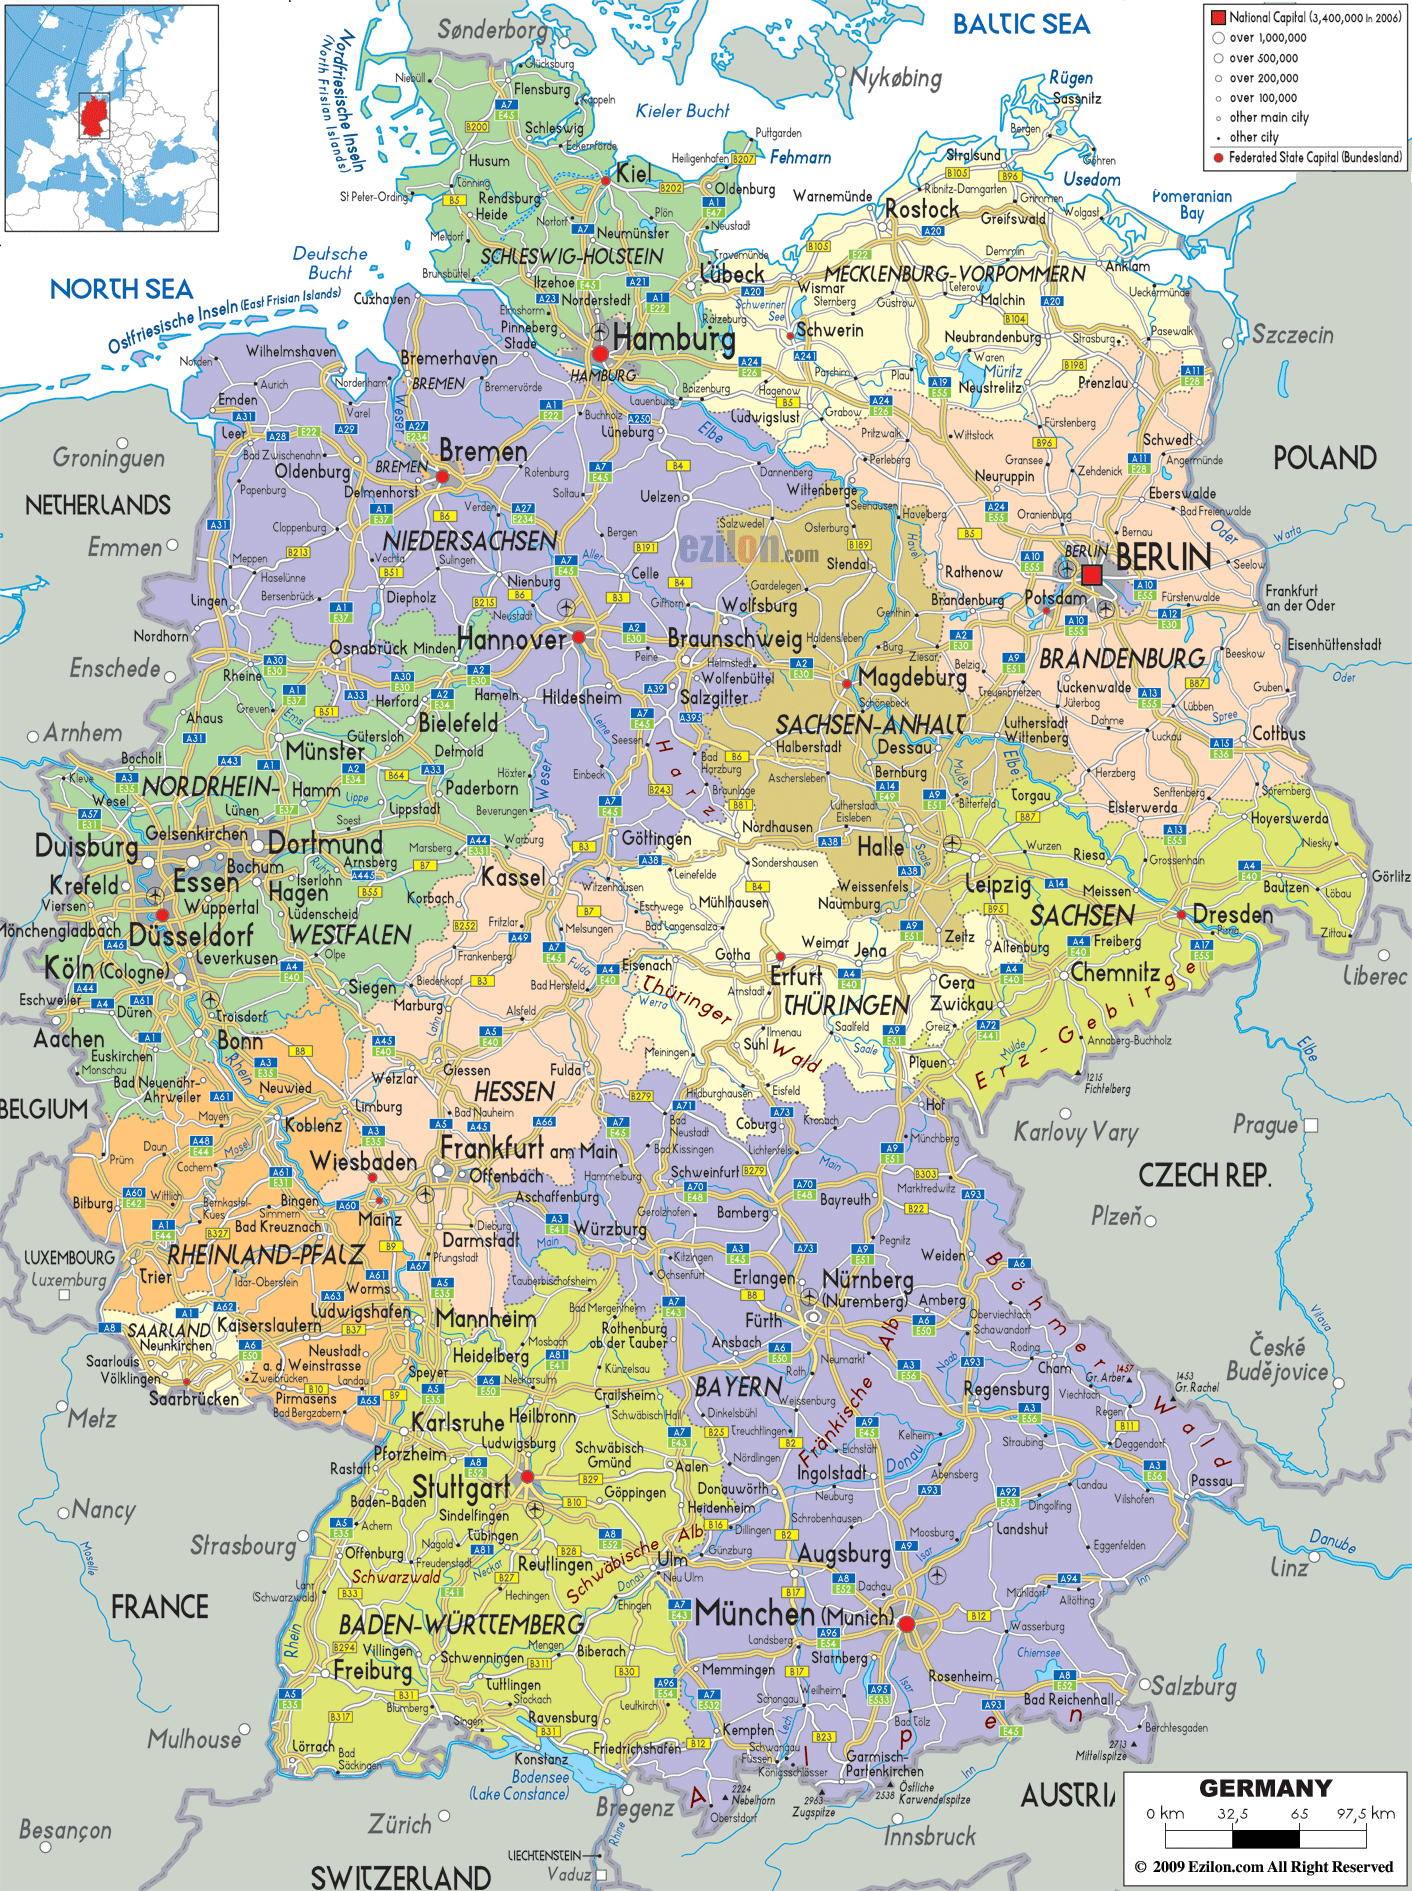 Large Detailed Political And Administrative Map Of Germany With - Germany map airports